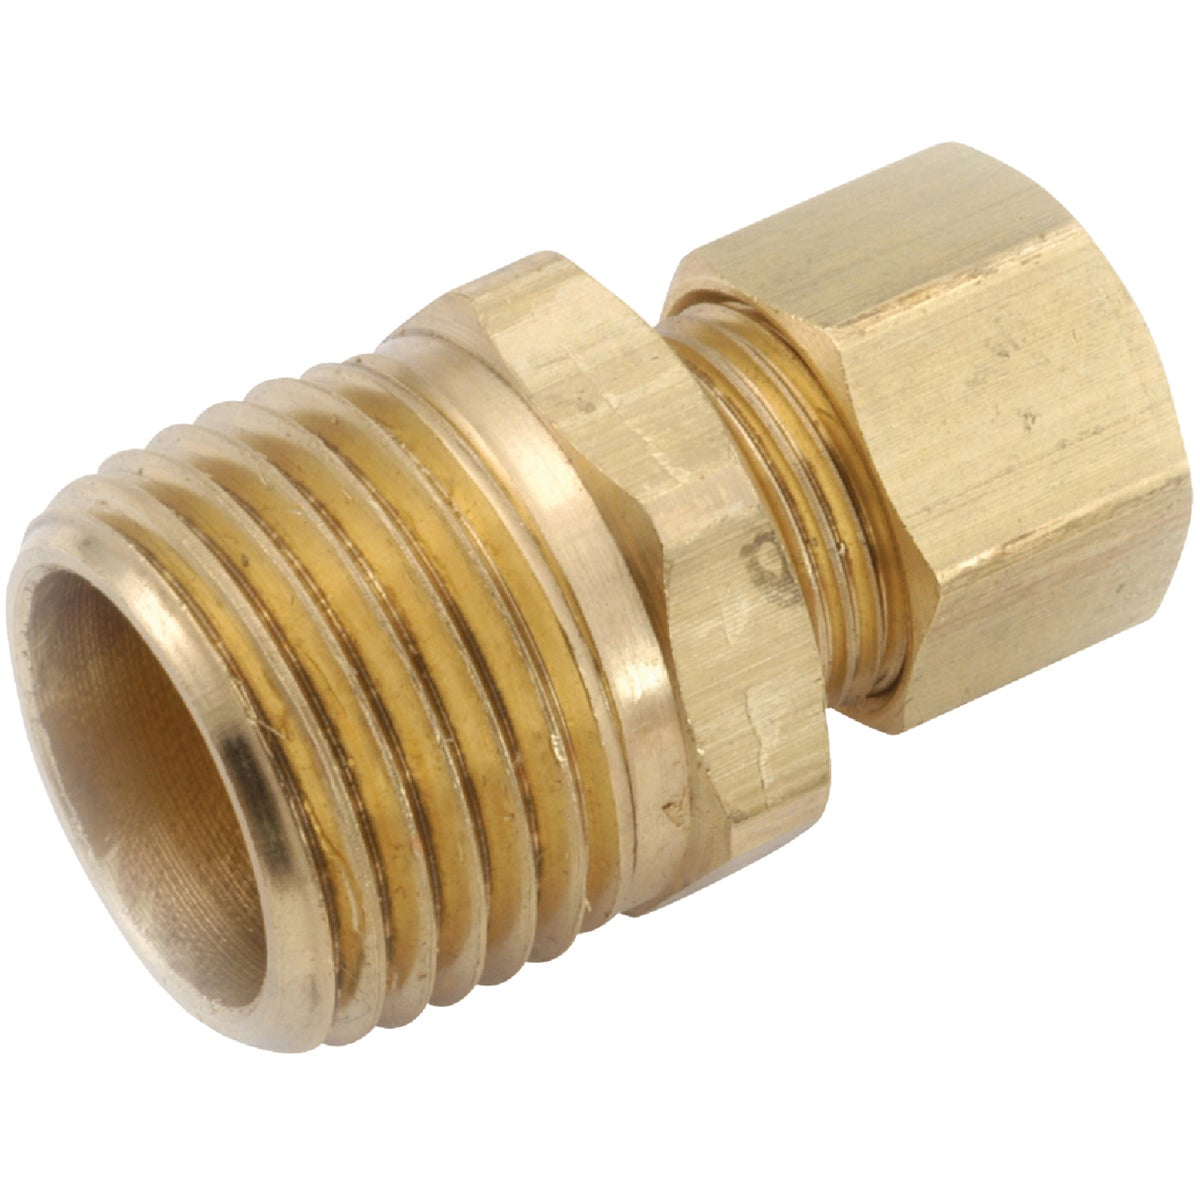 3/8X3/8 MALE CONNECTOR - 750068-0606 by Anderson Metals Corp